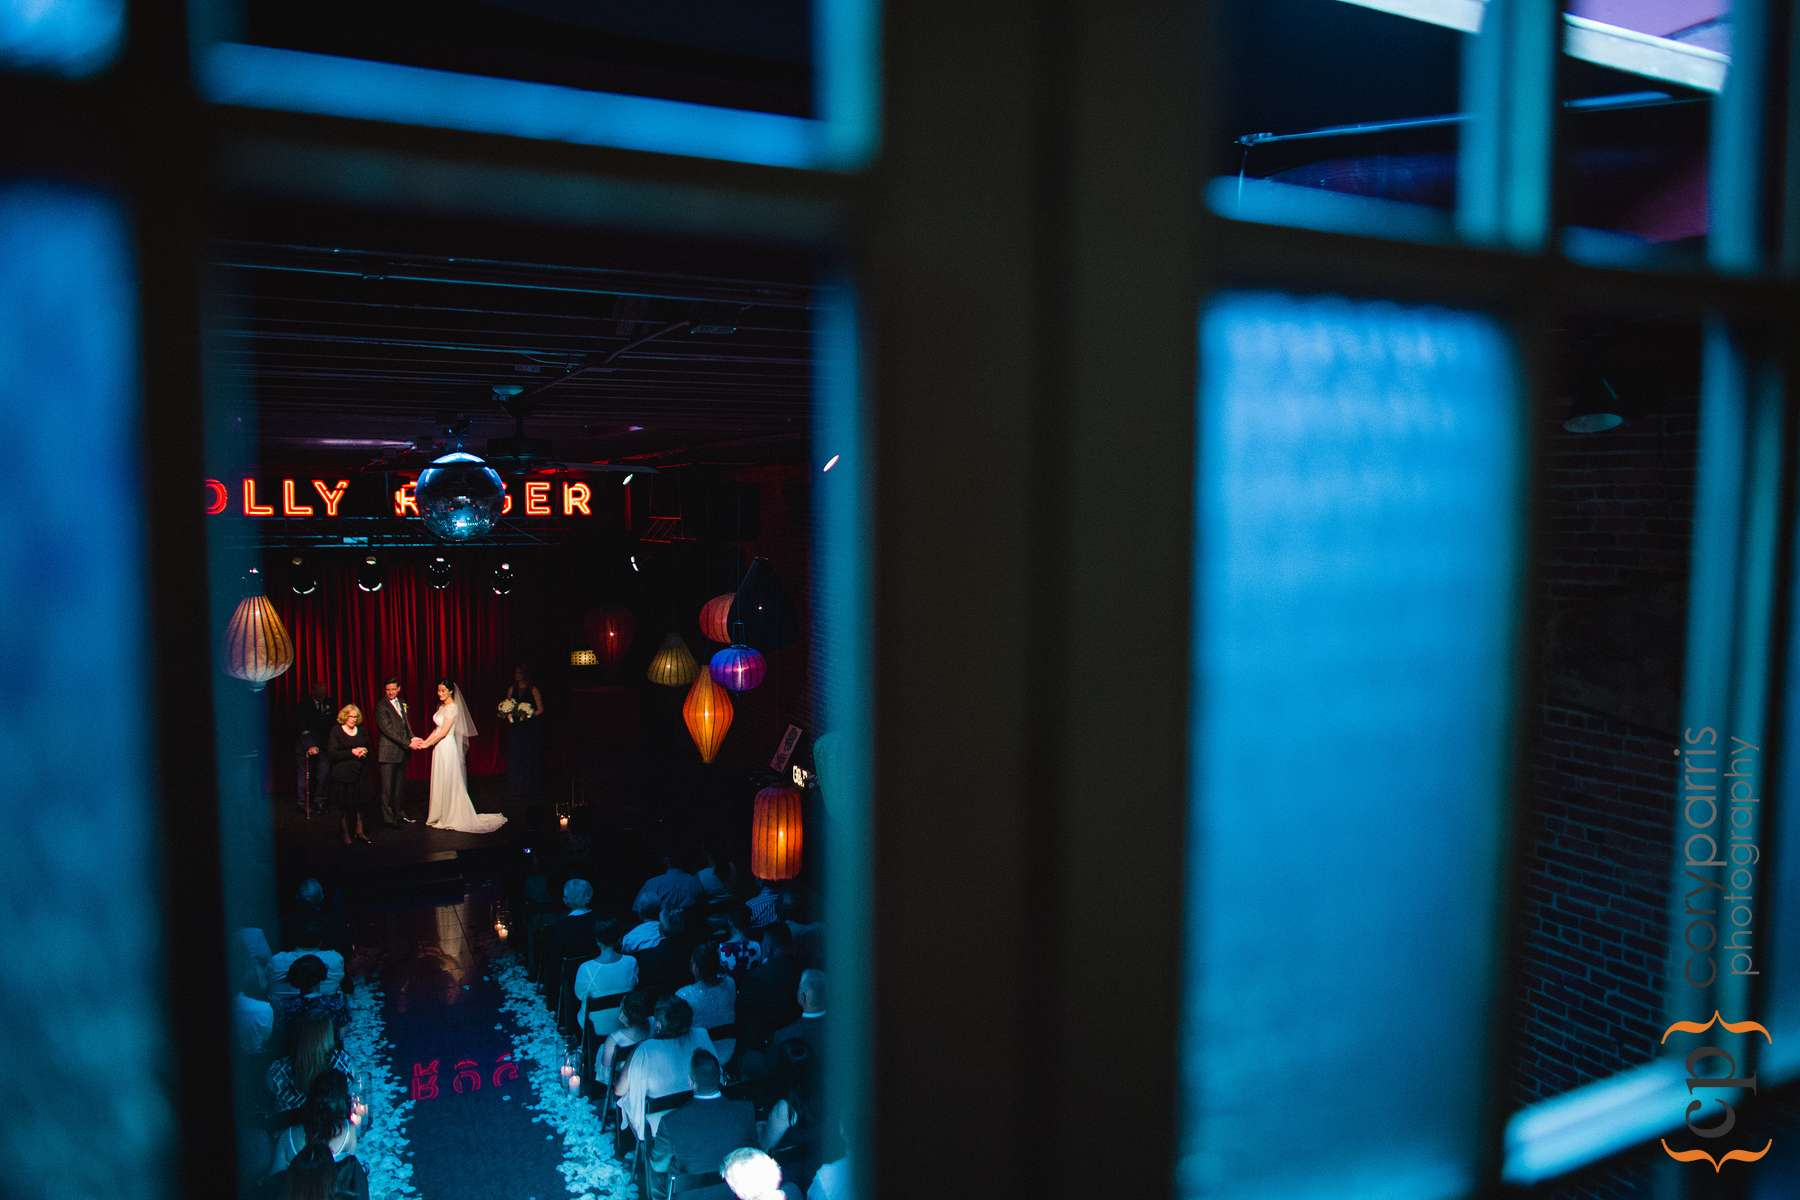 I took this photo during the wedding ceremony through the windows in the bridal loft.